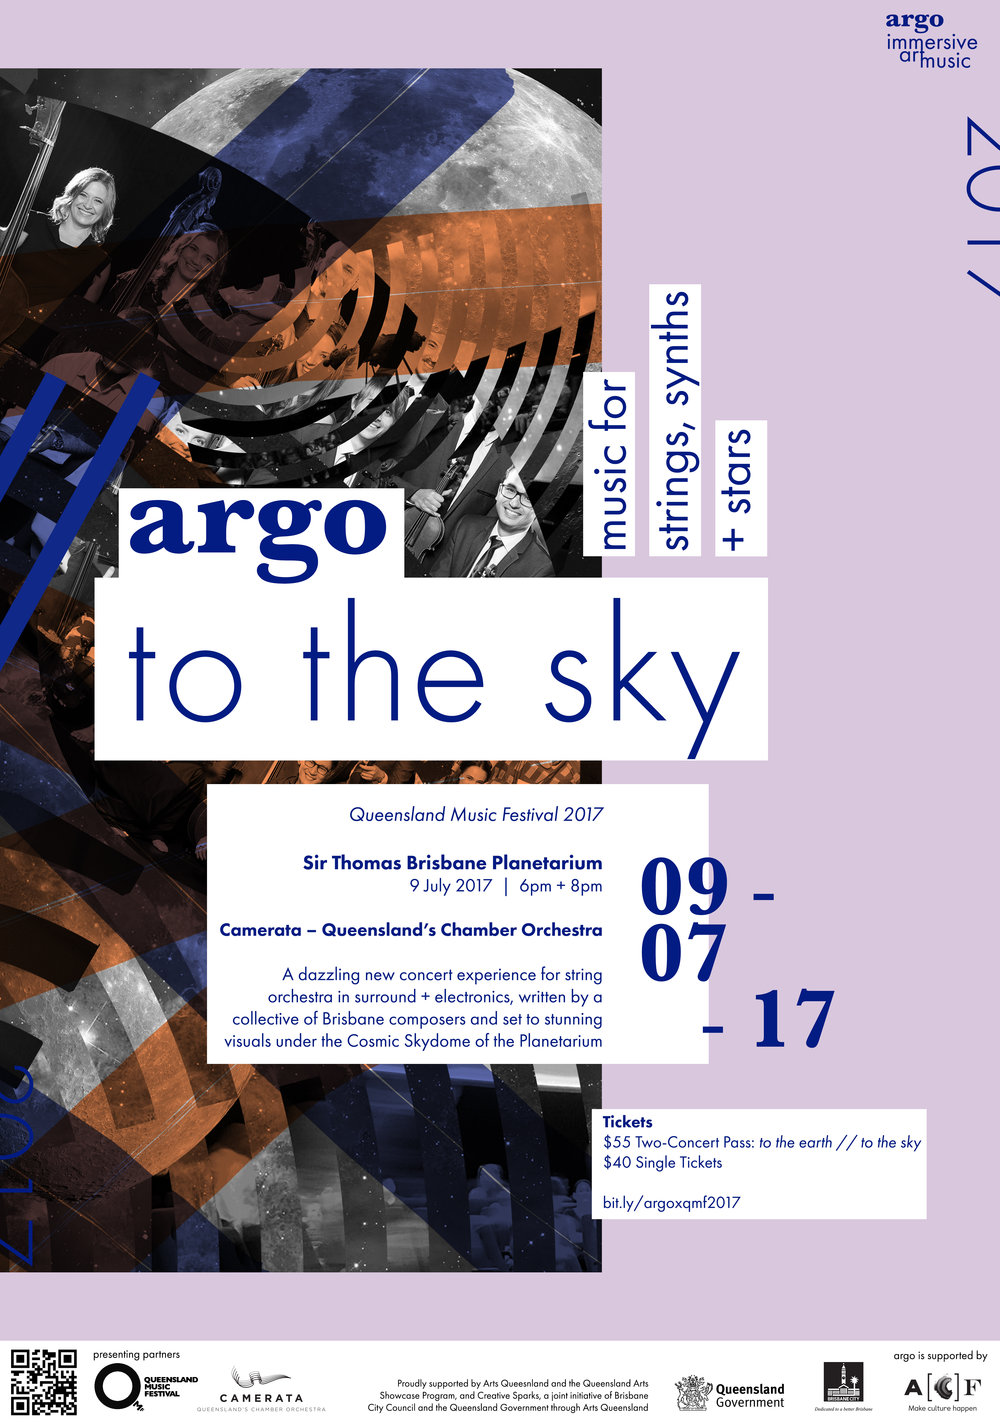 Argo_3_TO THE SKY-Poster.jpg